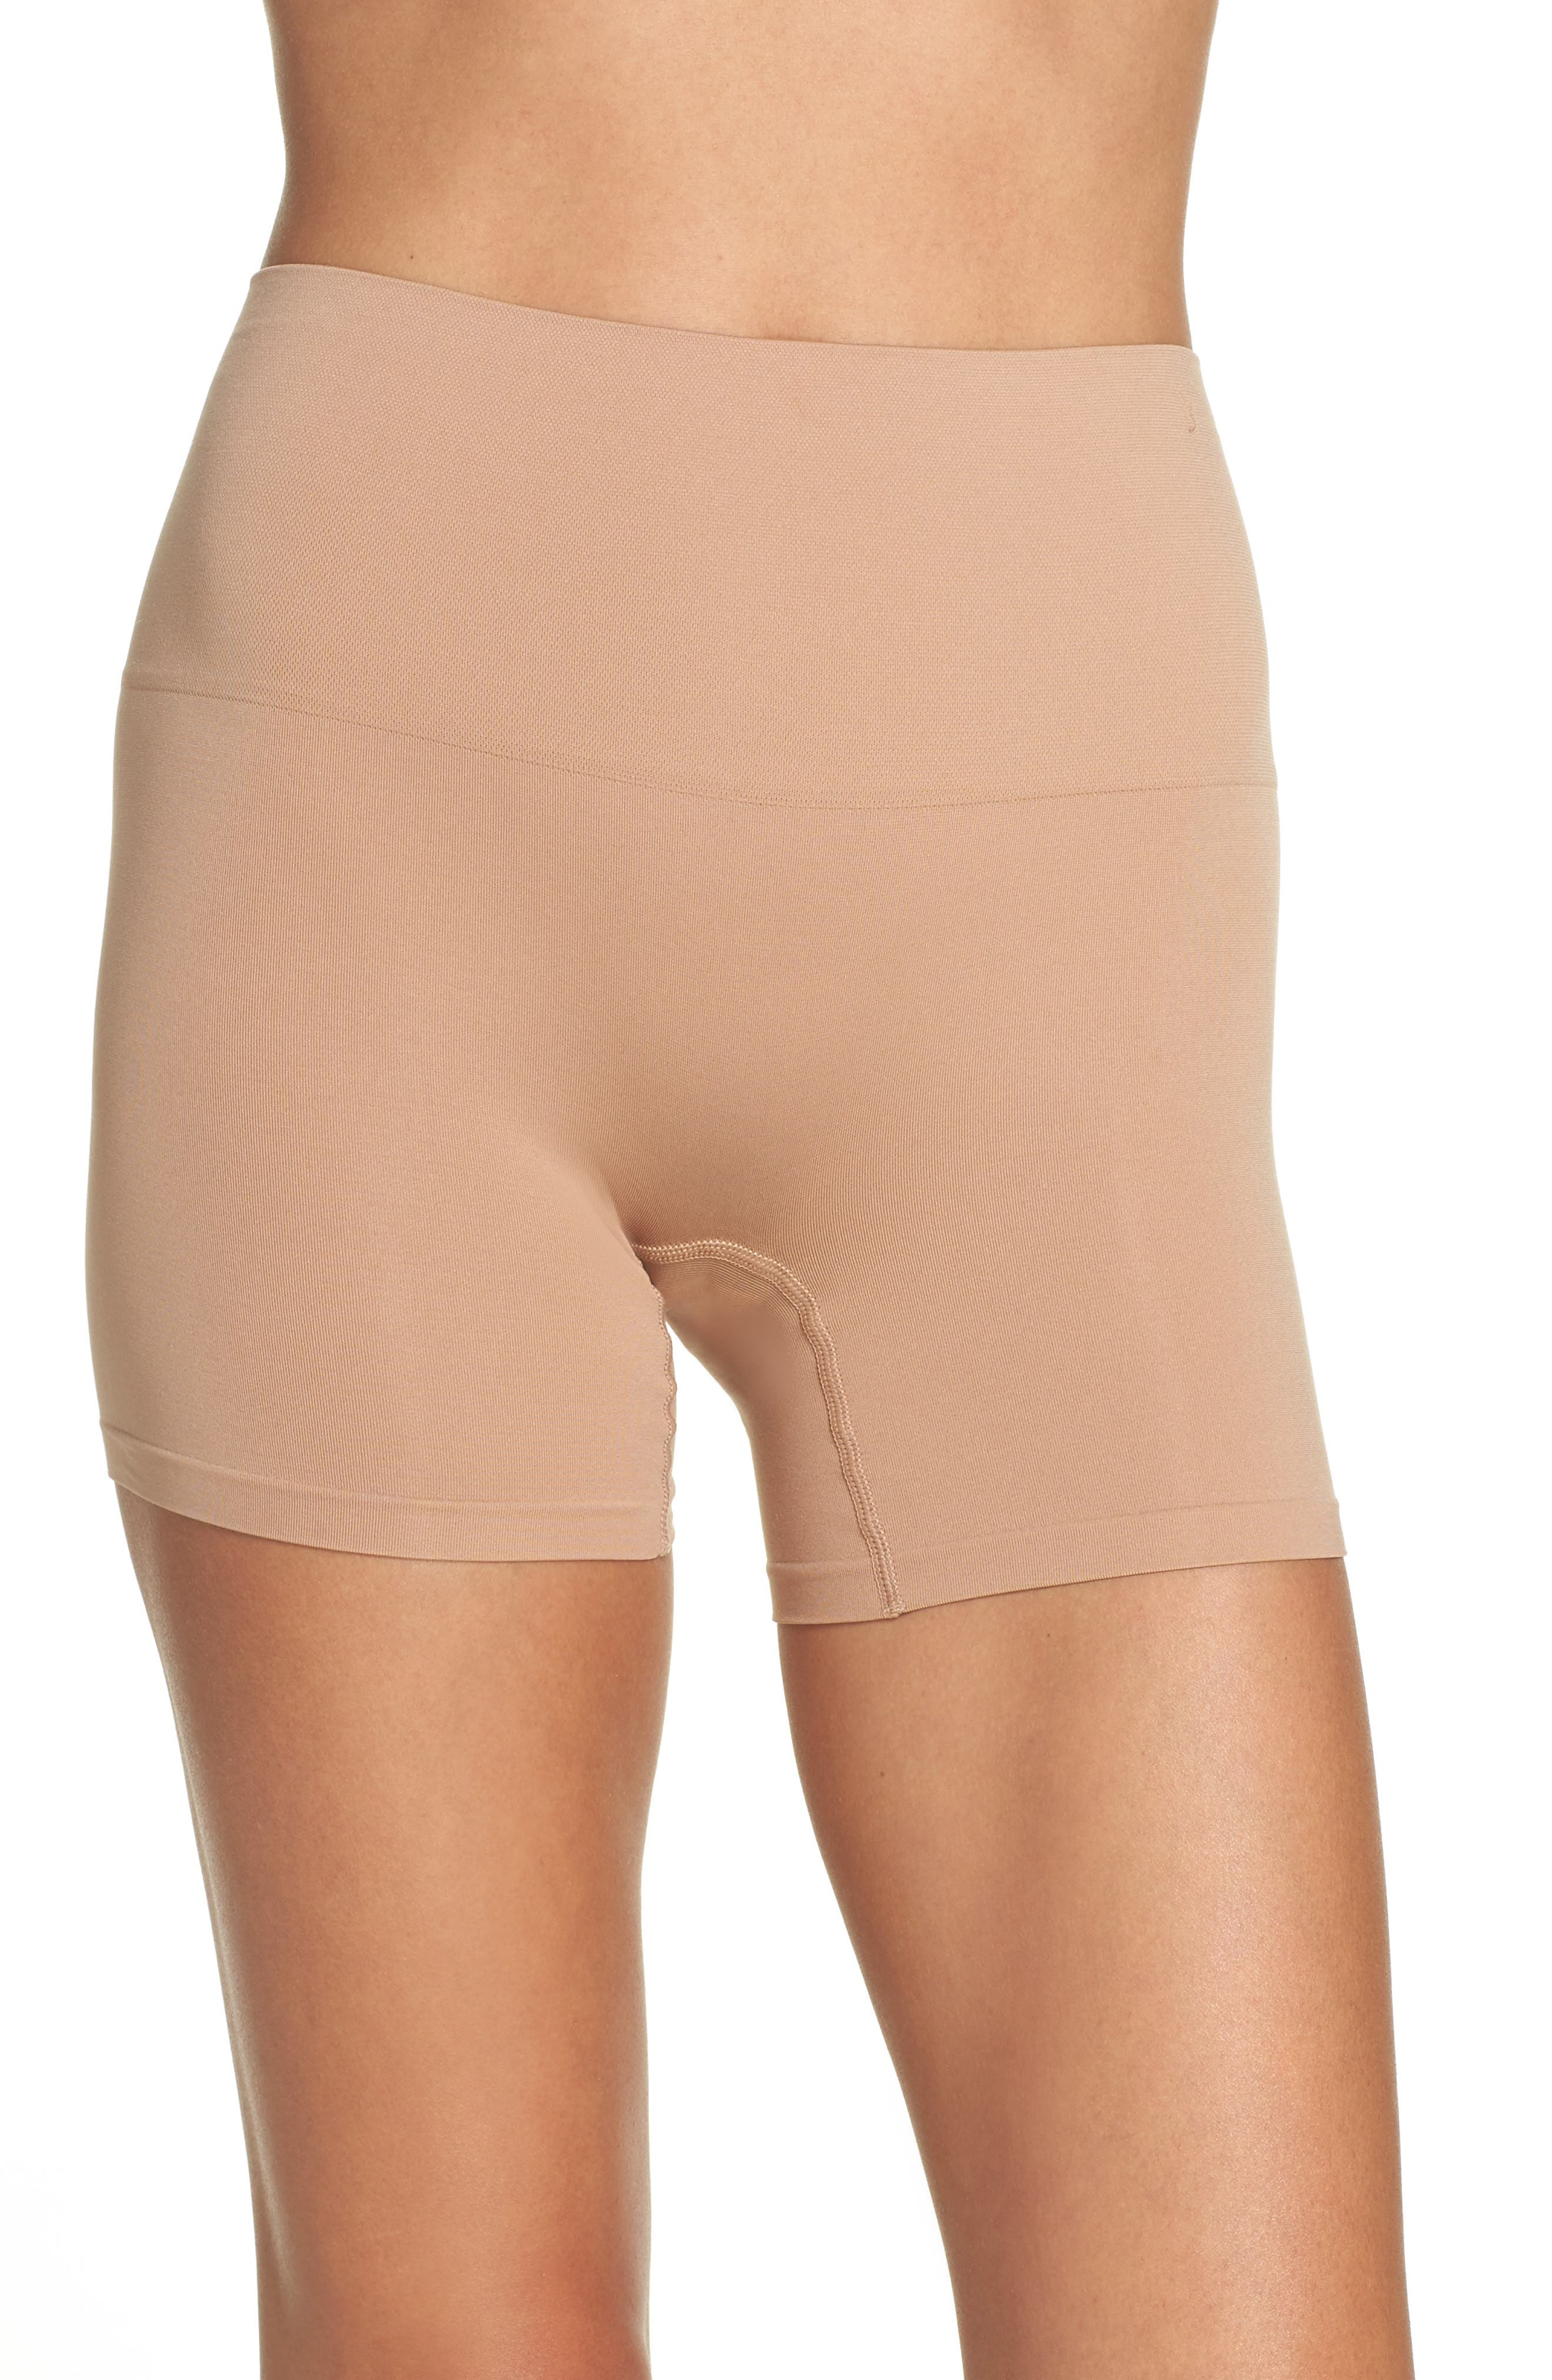 Ultralight Seamless Shaping Shorts,                         Main,                         color, Almond